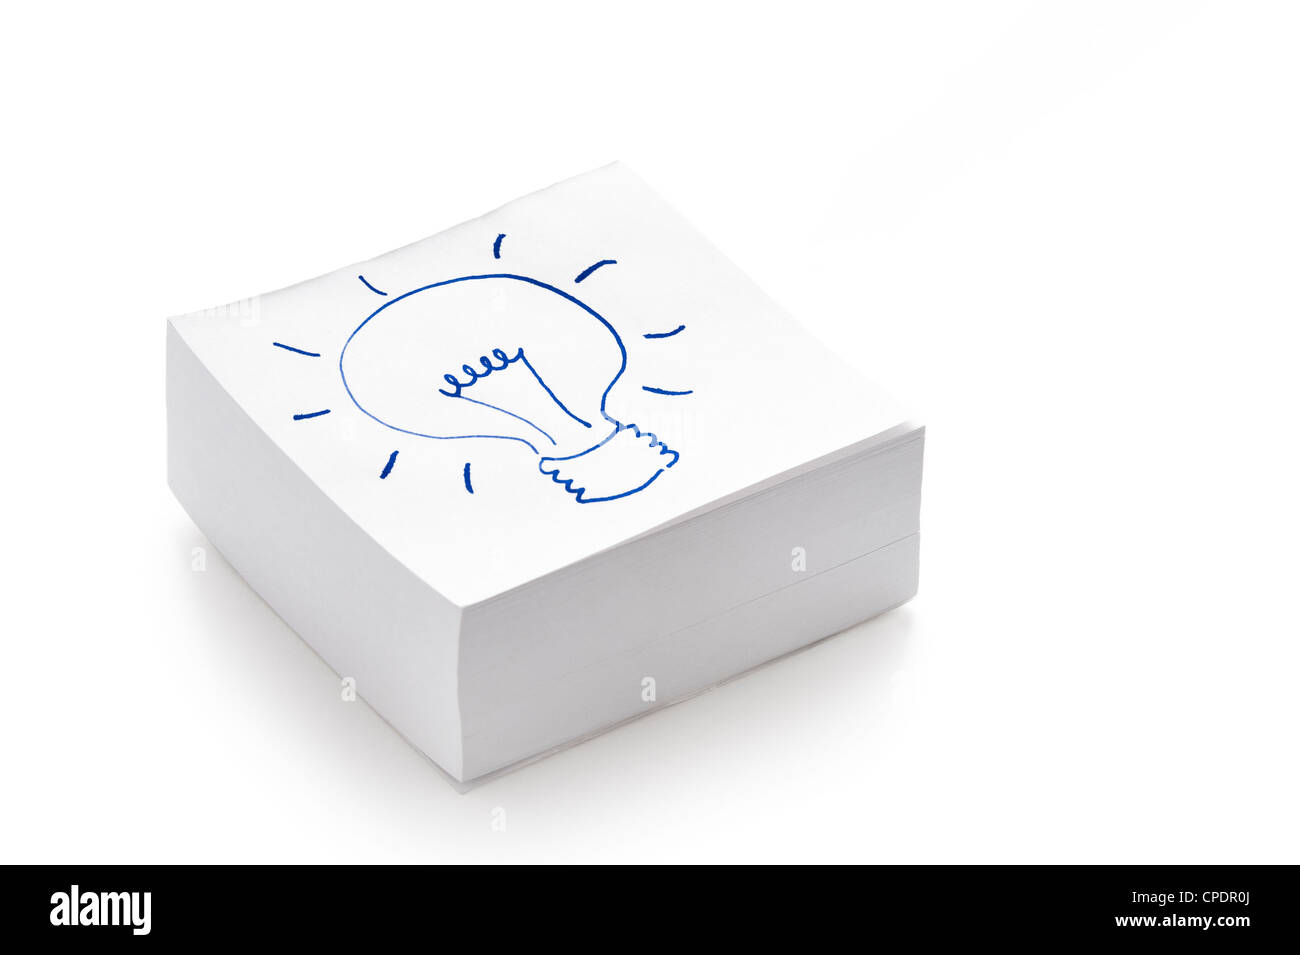 lightbulb drawing on a stack of post it notes illustrating the concept of having an idea - Stock Image